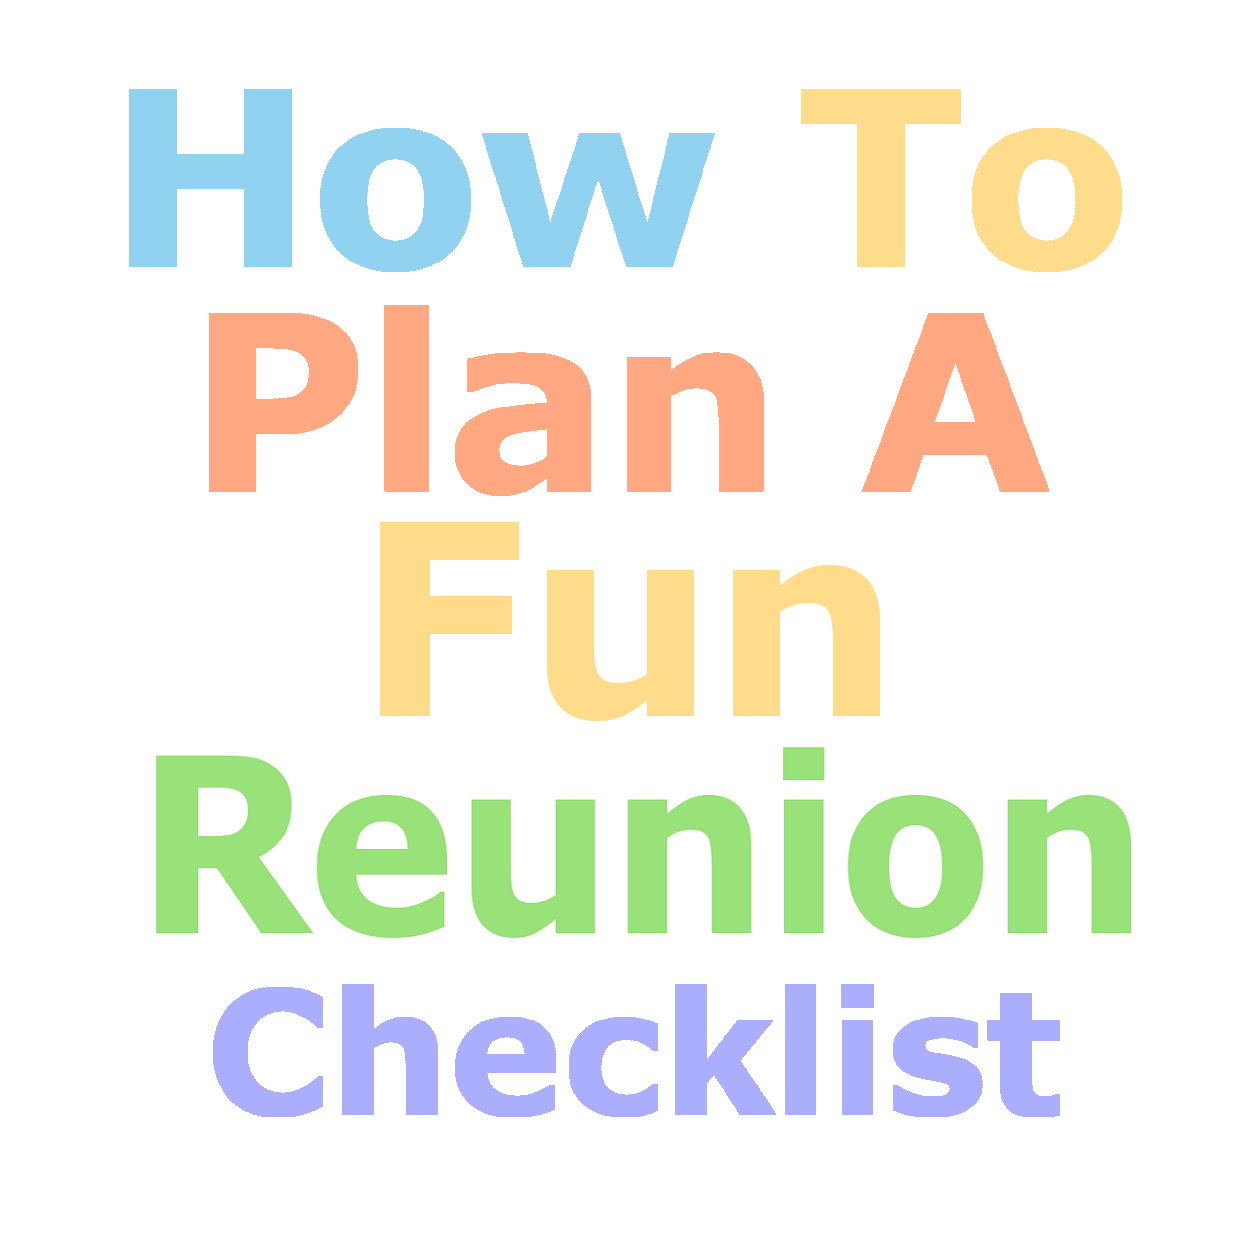 Fun reunion planning checklist the family reunion planners blog fun reunion planning checklist the family reunion planners blog familyreunionfundfaisingideas more pronofoot35fo Image collections